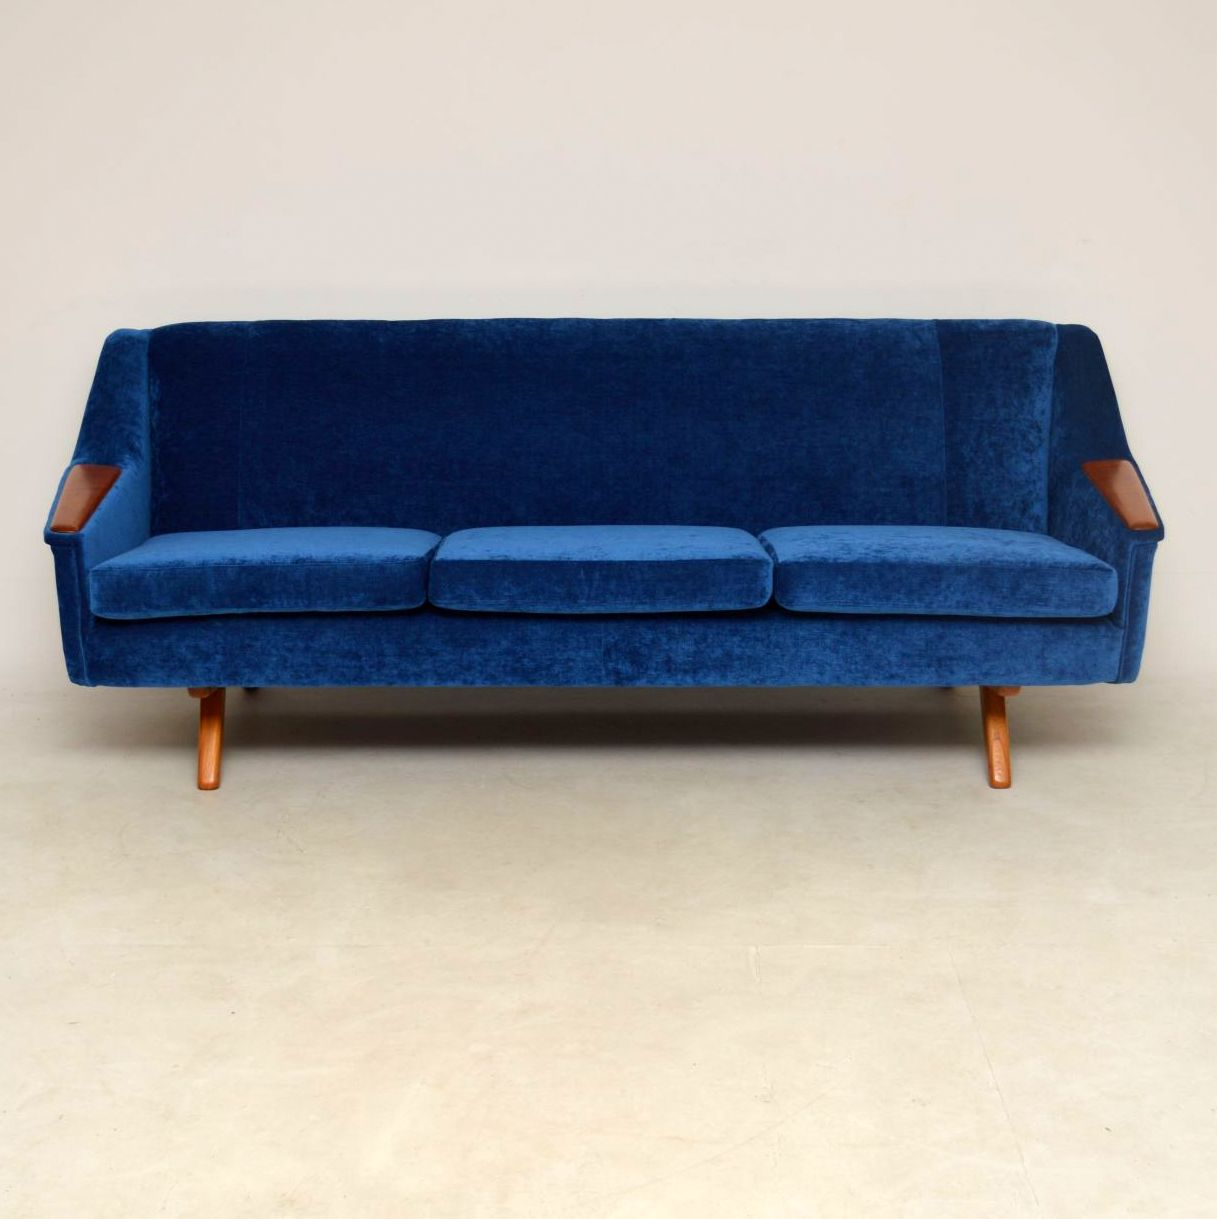 1960 S Vintage Sofa By Illum Wikkelso For Westnofa Retrospective